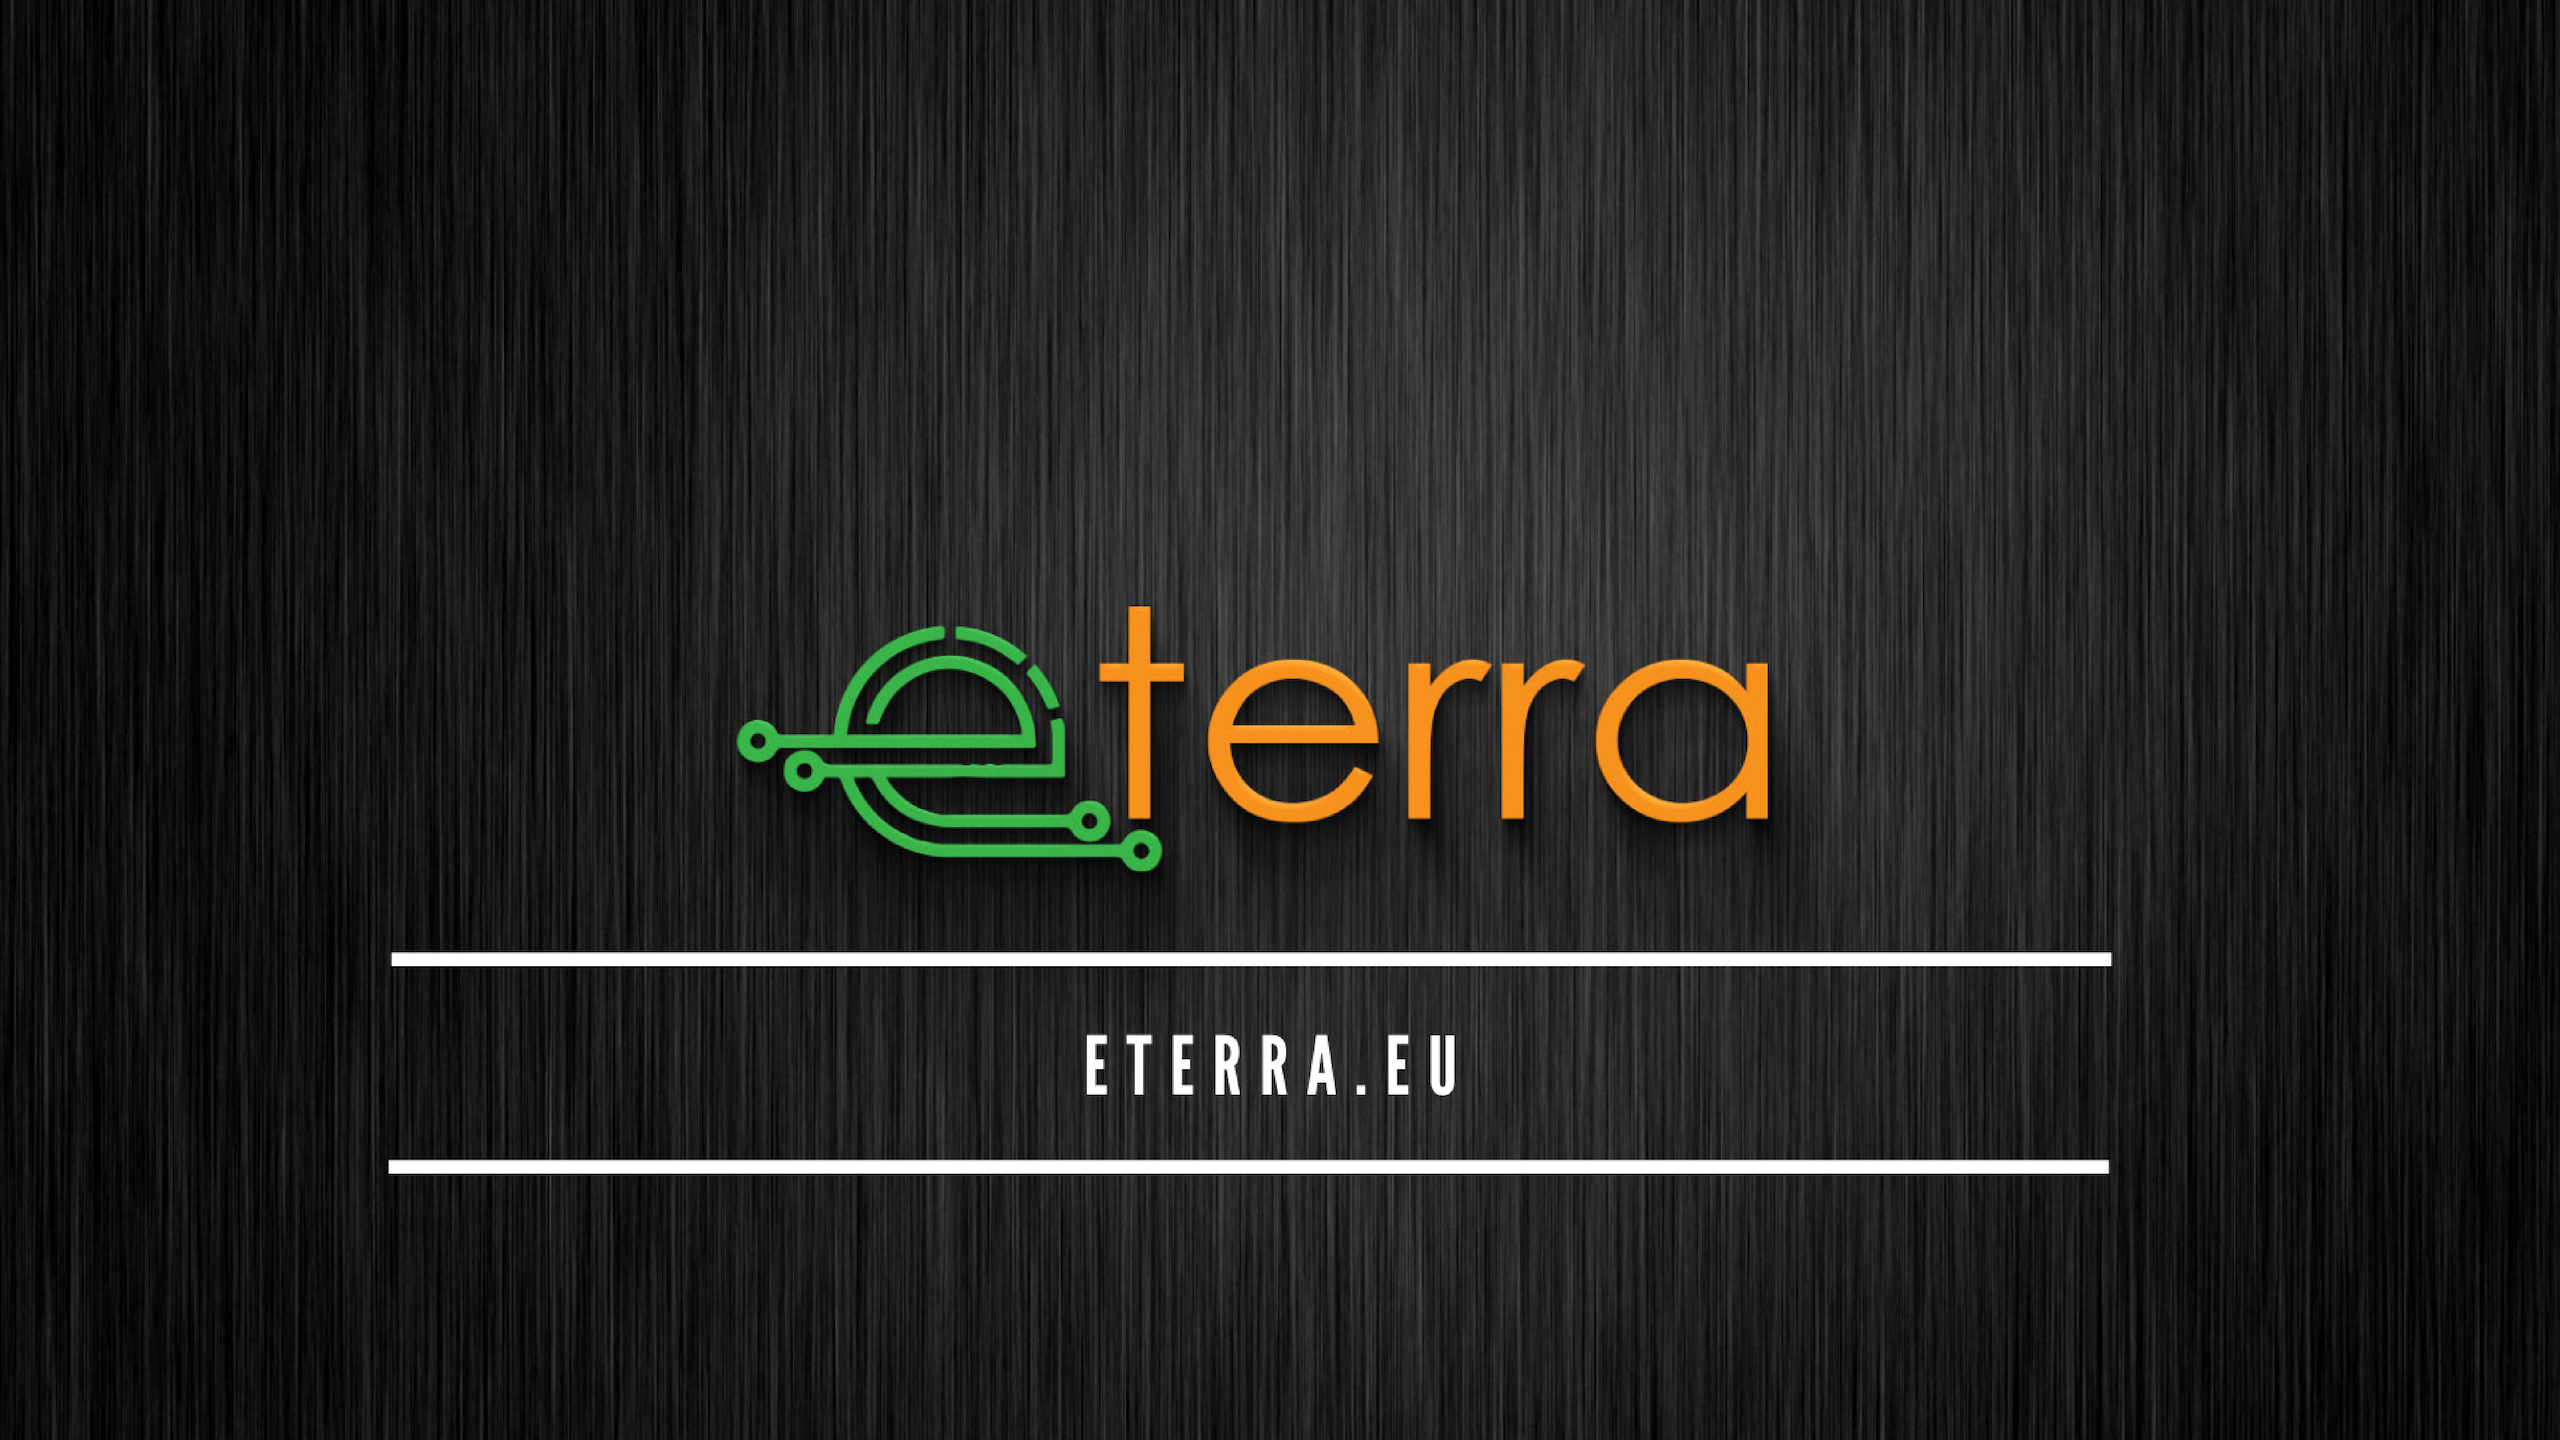 Eterra to open first electric vehicles store in Ashbourne